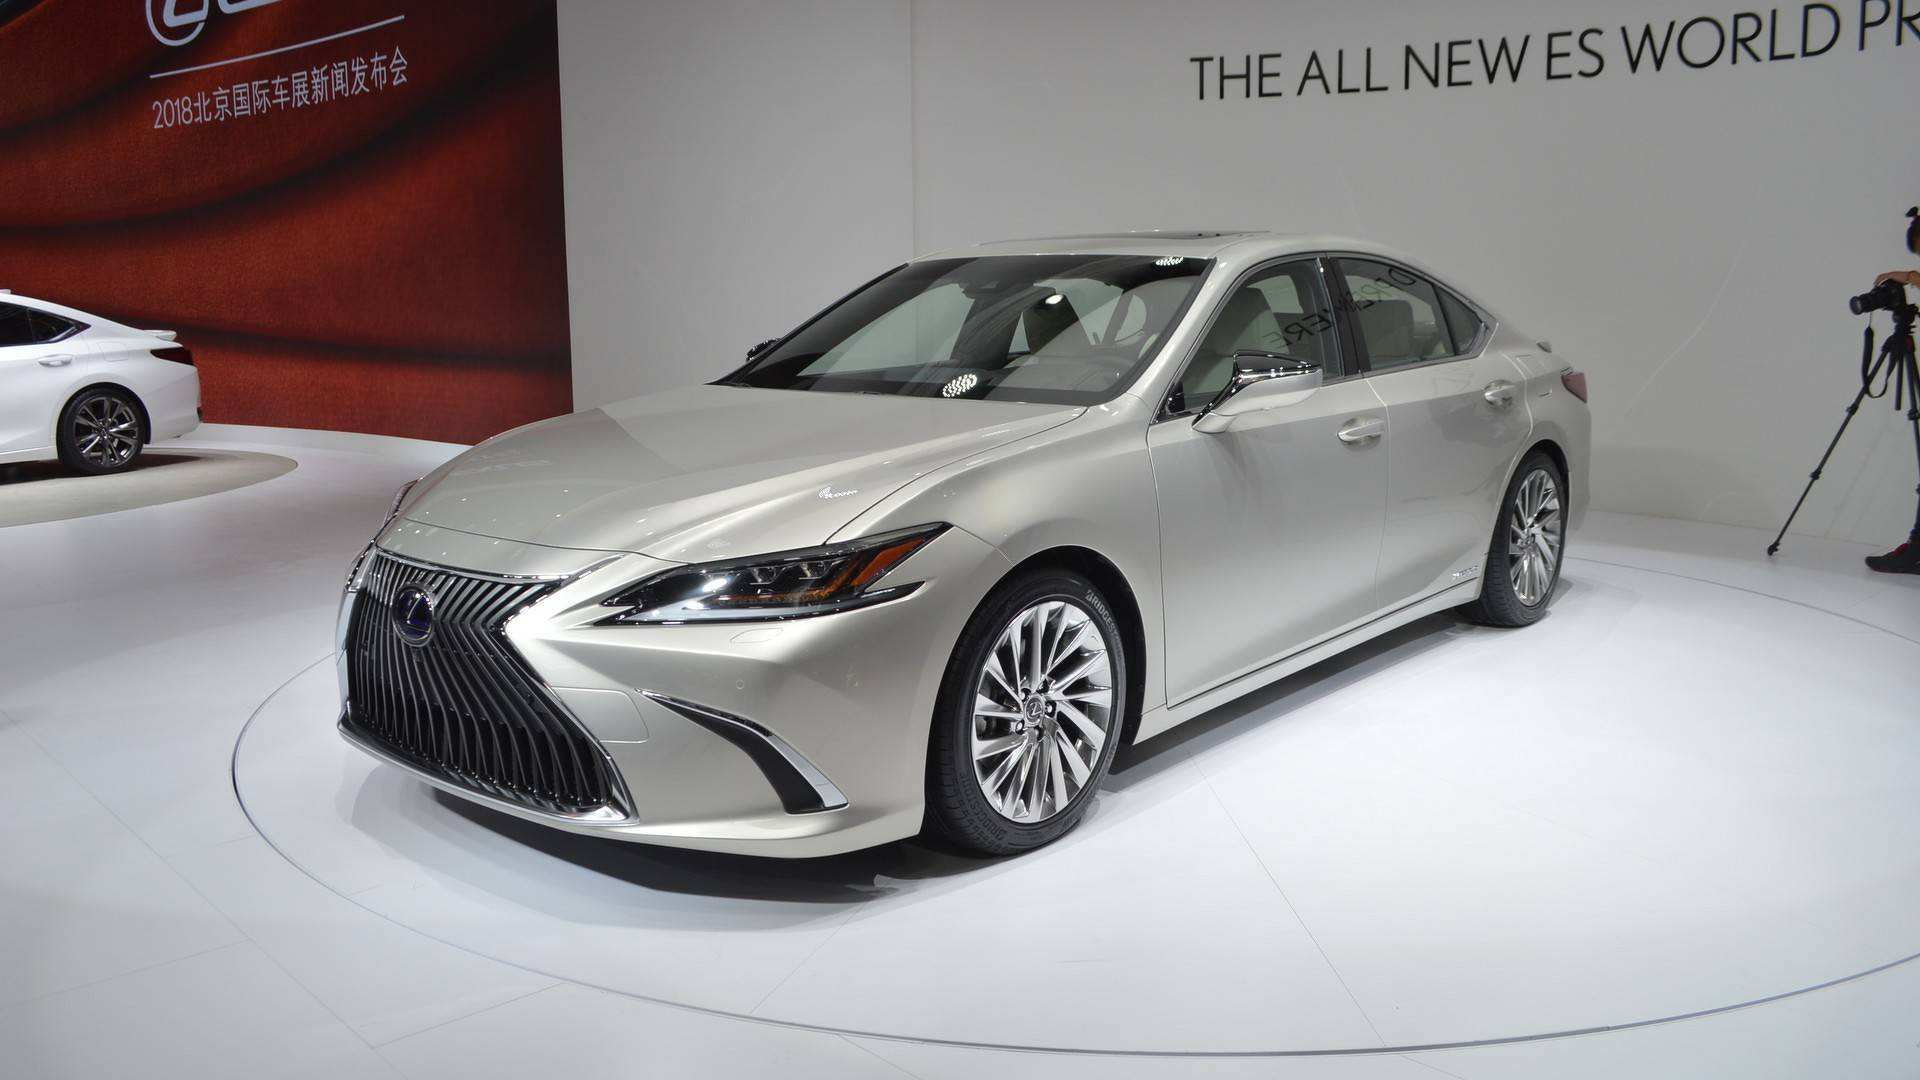 38 All New Lexus Es 2019 Debut Pictures by Lexus Es 2019 Debut